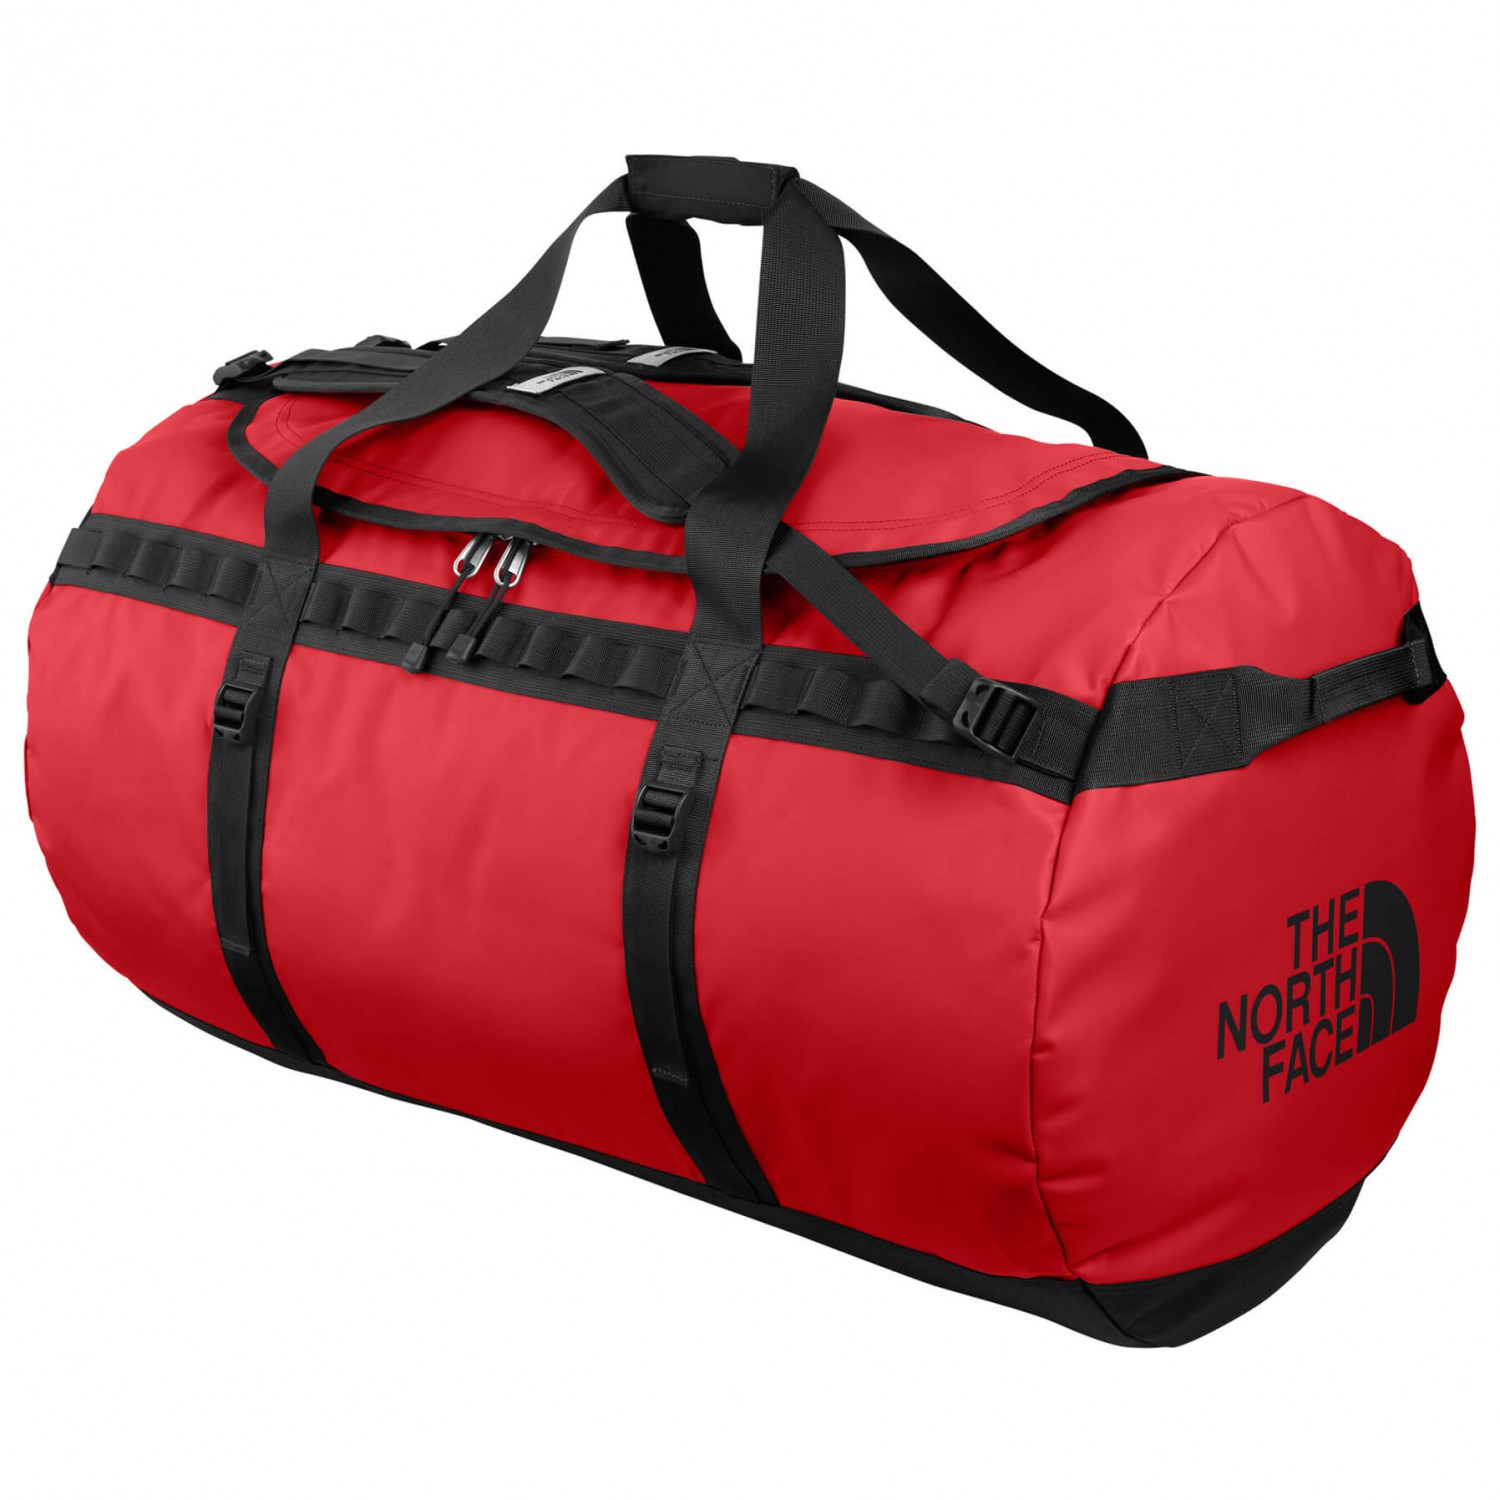 reputable site 2d917 f1a2a The North Face - Base Camp Duffel - Luggage